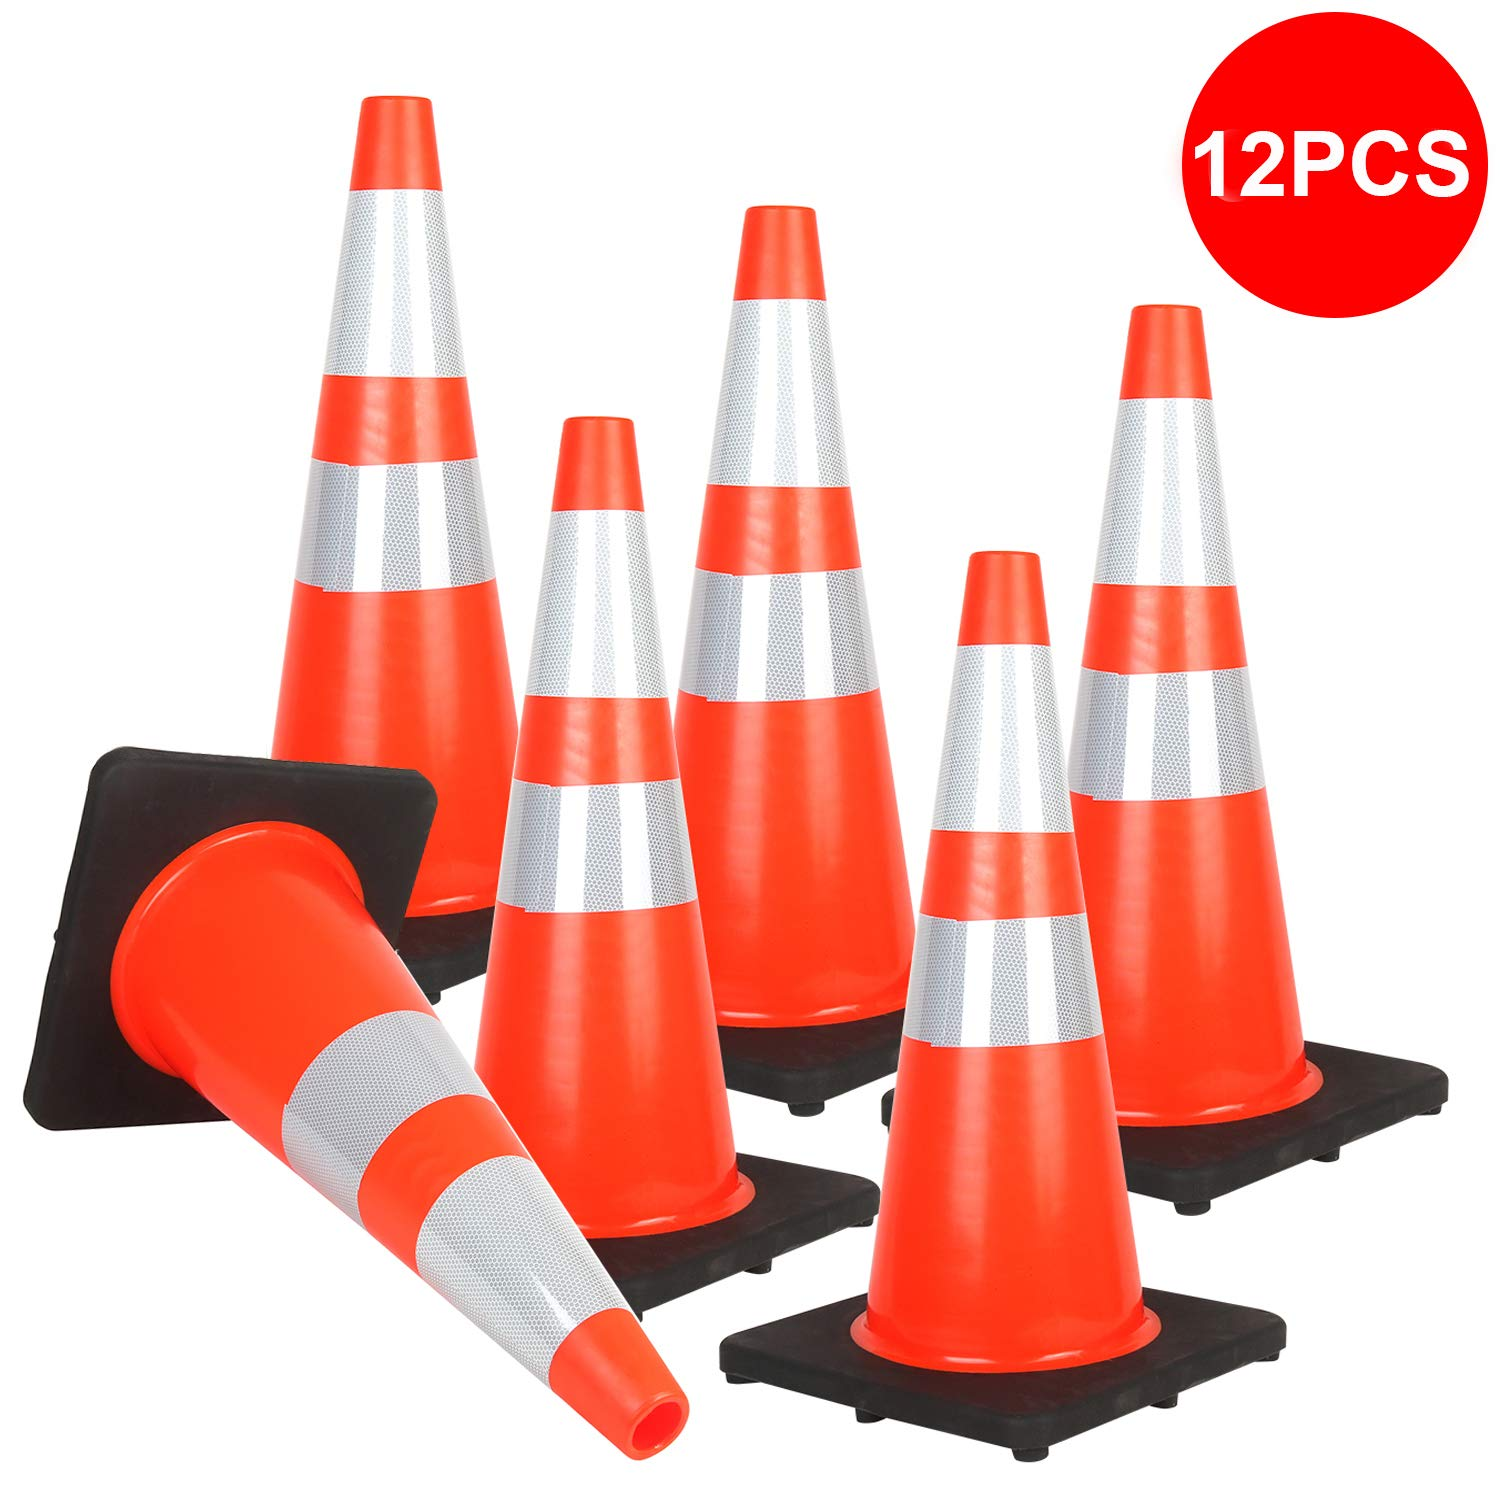 Reliancer 12PCS 28'' Traffic Cones PVC Safety Road Parking Cones with Black Weighted Base w/6''&4'' Reflective Collars Fluorescent Orange Hazard Cones Construction Cones for Traffic or Home Improvement